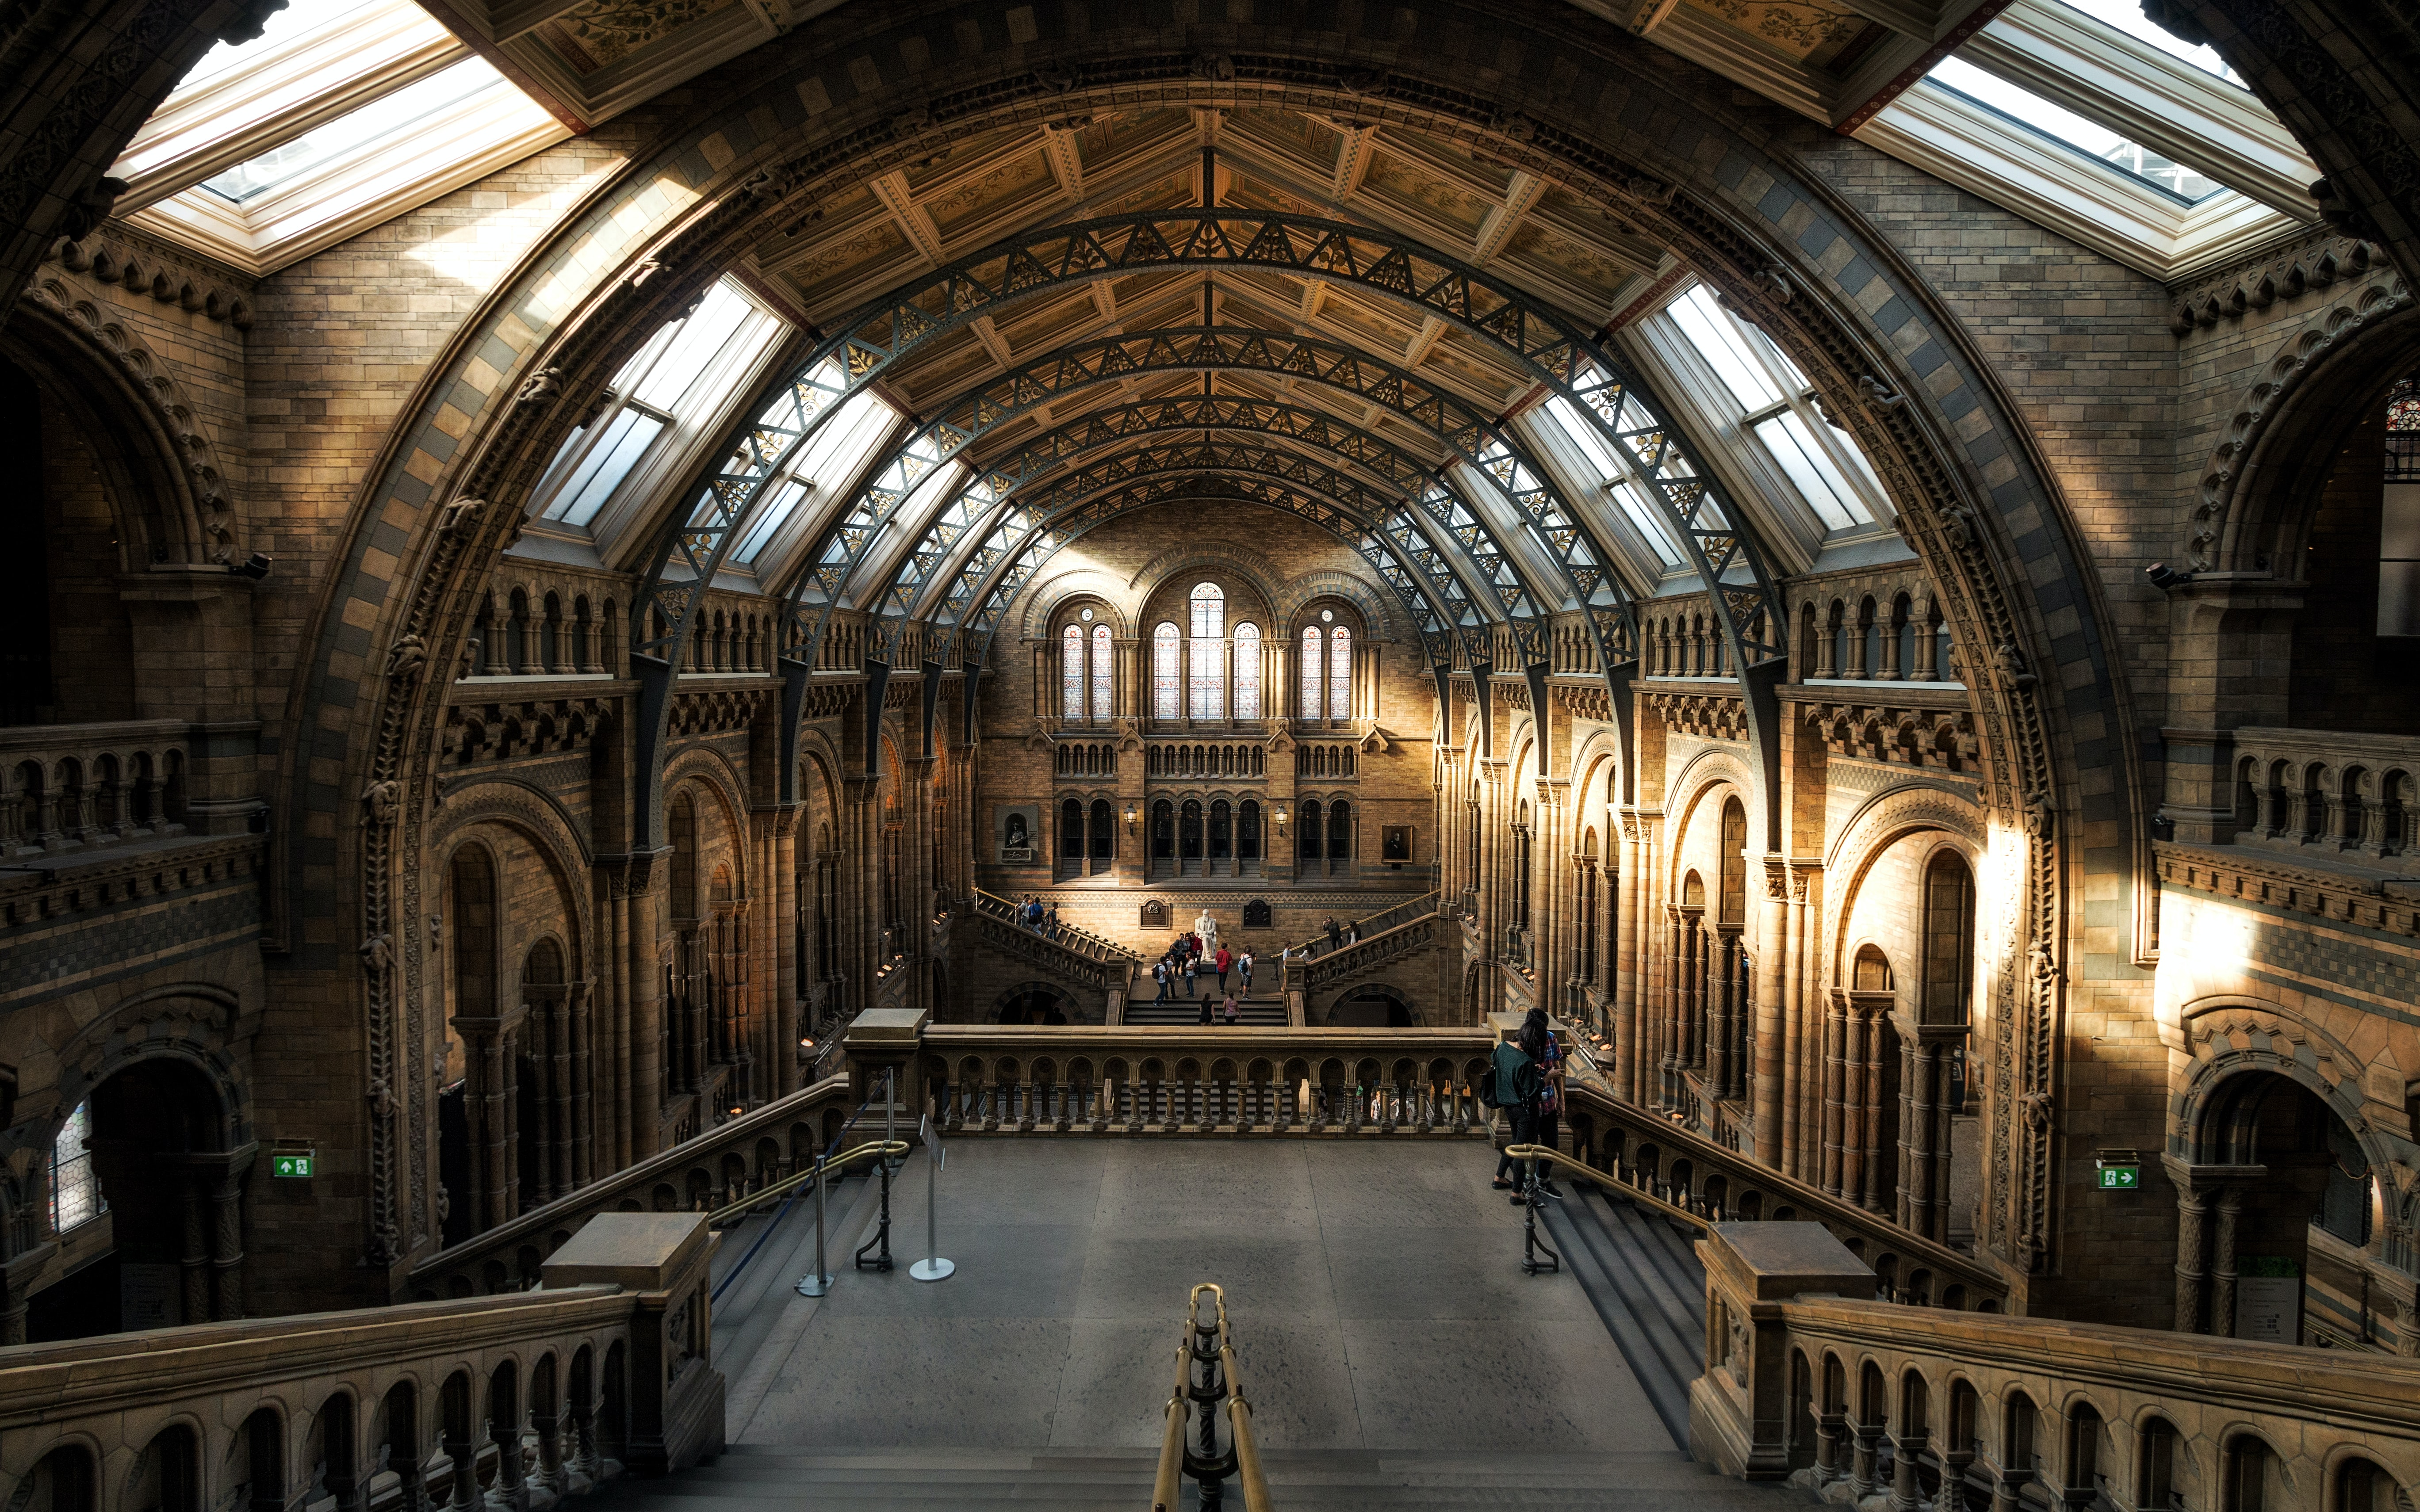 The main hall of the Natural History Museum in London. The room has brown brick walls with intricate arches, and windows on the ceiling with sunlight coming in,